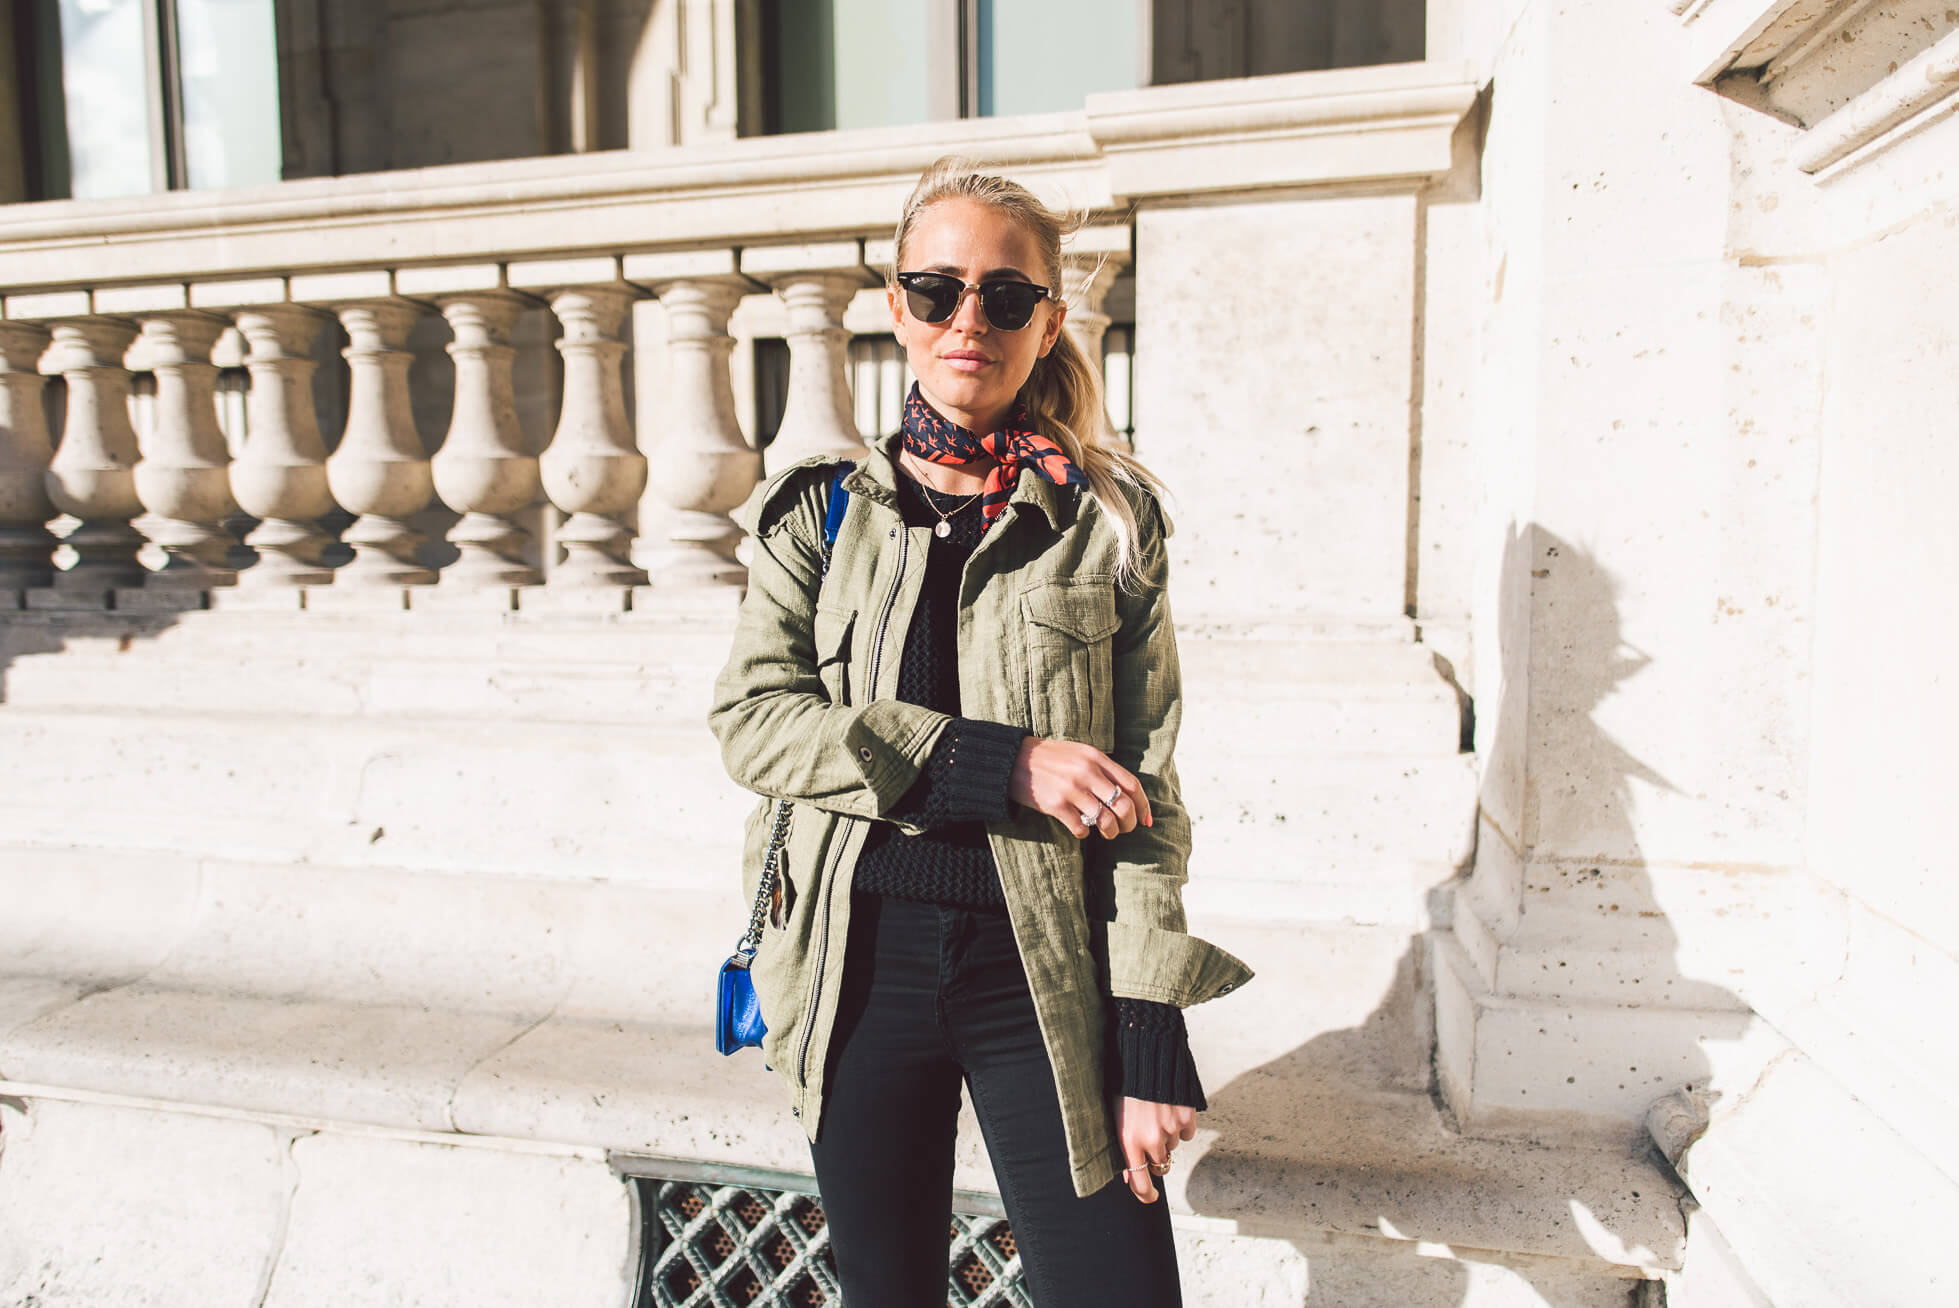 janni-deler-army-jacket-ginaDSC_1858